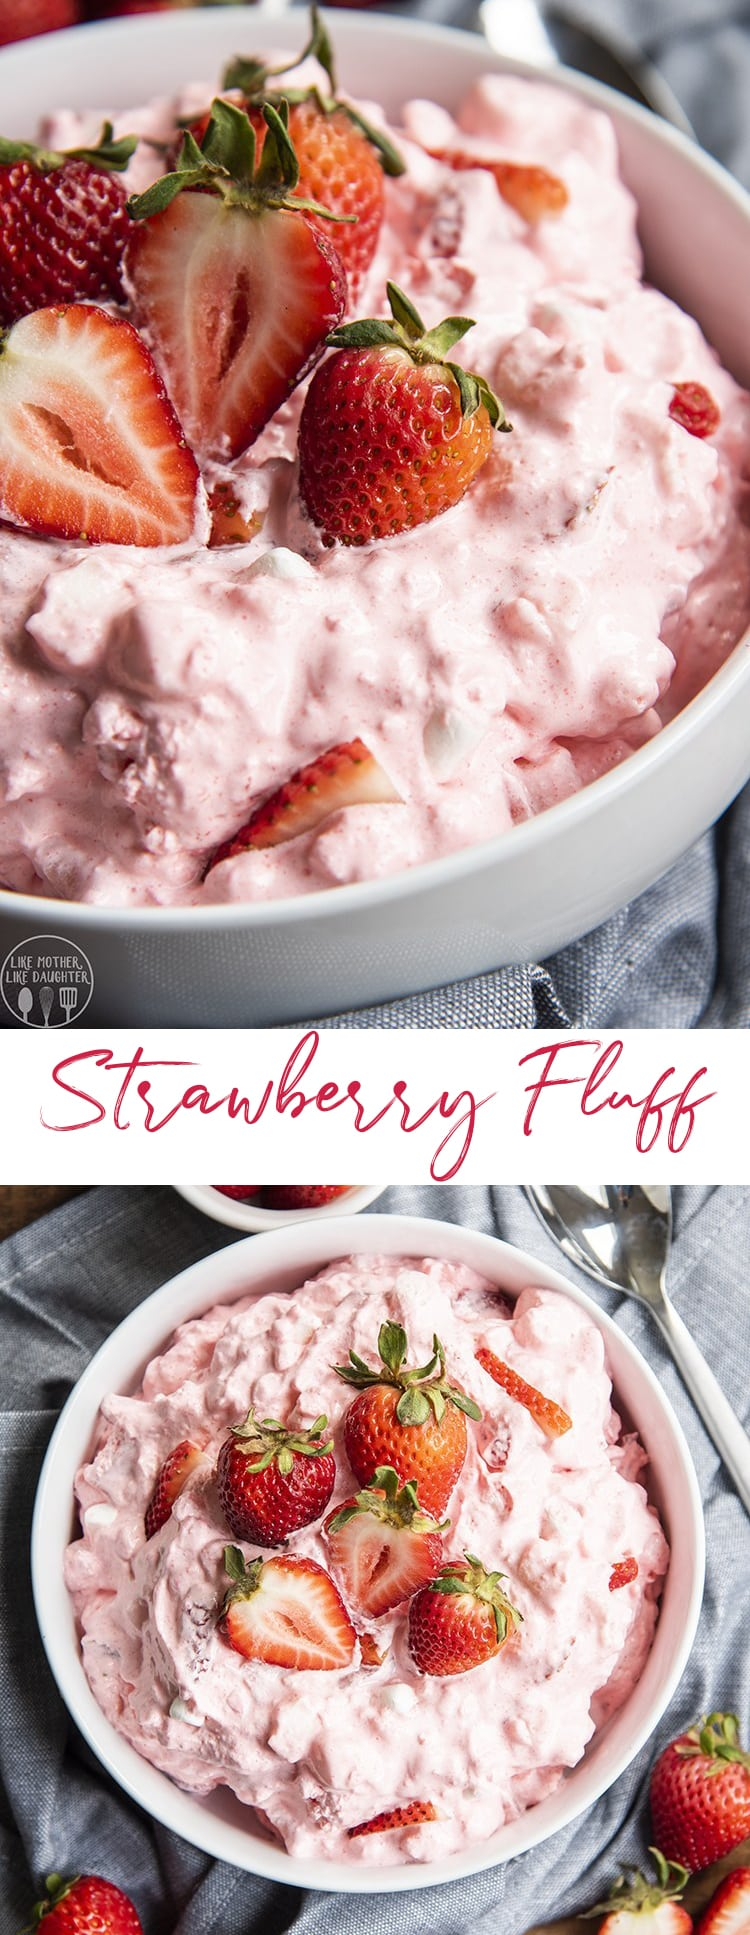 Strawberry fluff is a light and fluffy jello salad made with only five ingredients; it's the perfect spring or summer side dish or dessert! #jellosalad #strawberry #strawberryjello #jellofluff #Easterdinner #5ingredients